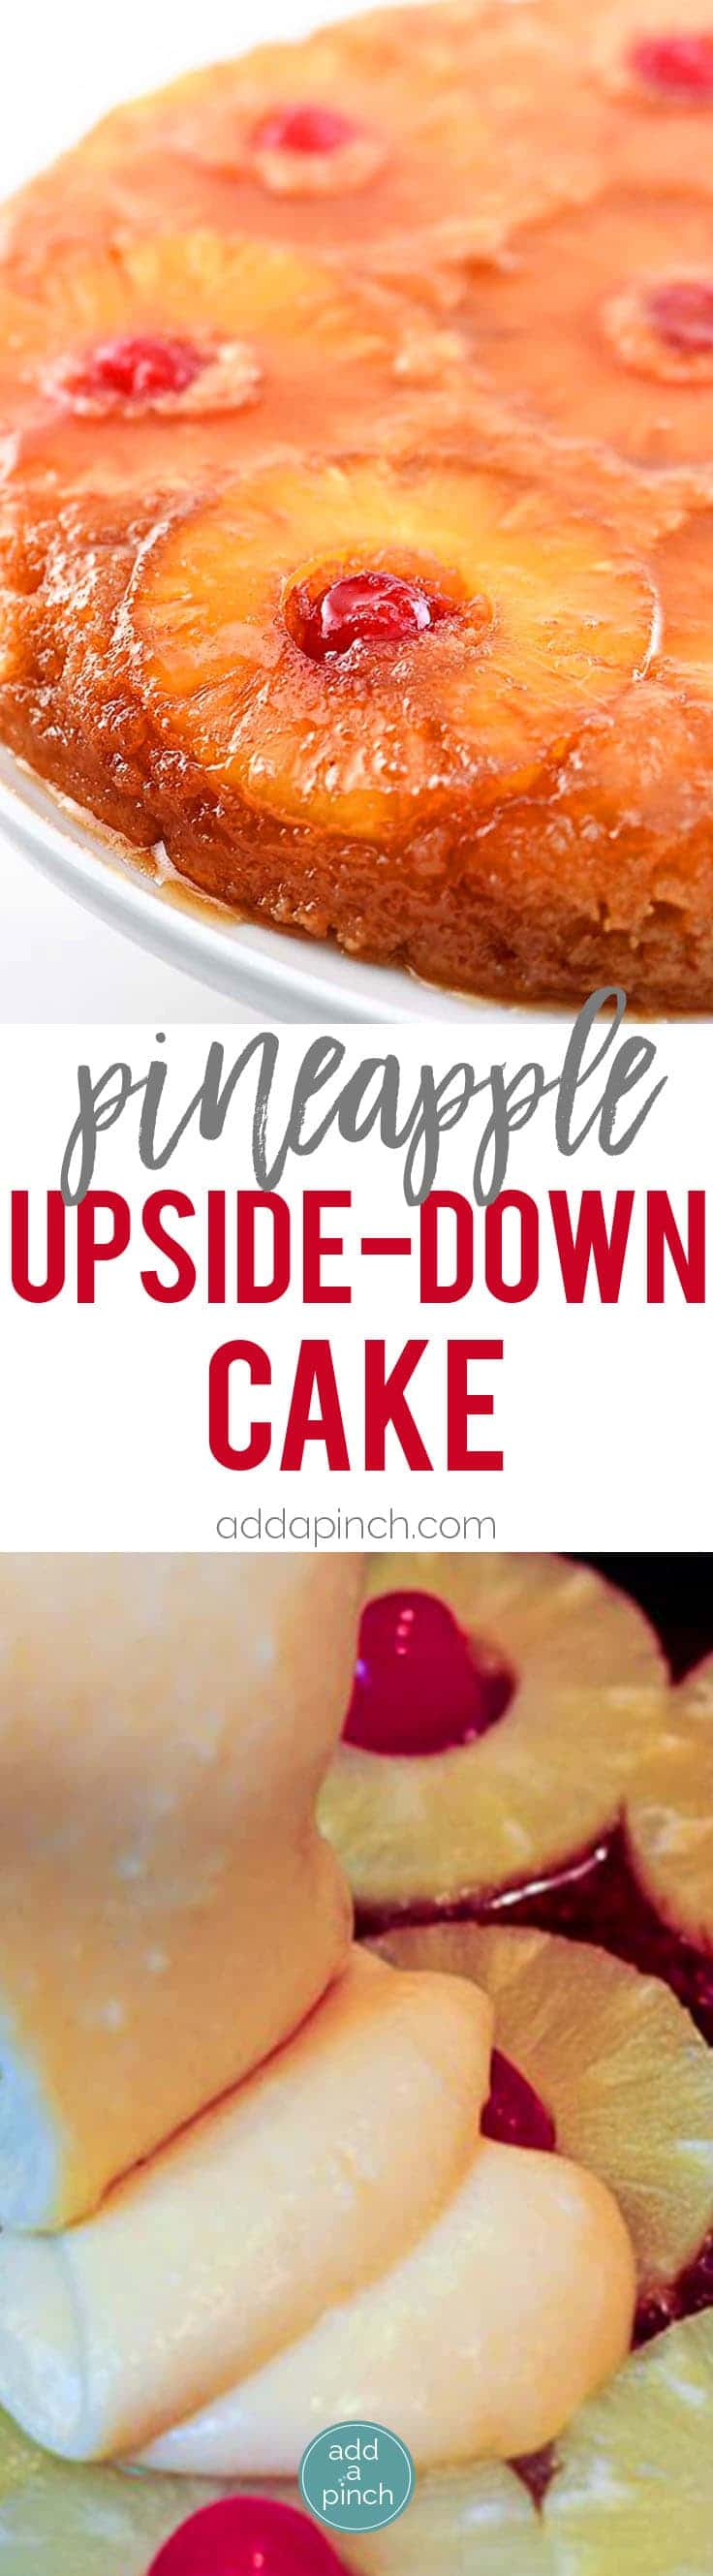 Pineapple Upside Down Cake Recipe: Pineapple Upside Down Cake makes a timeless dessert. Topped with a signature pineapple and cherry topping, this pineapple upside down cake is a southern classic. // addapinch.com